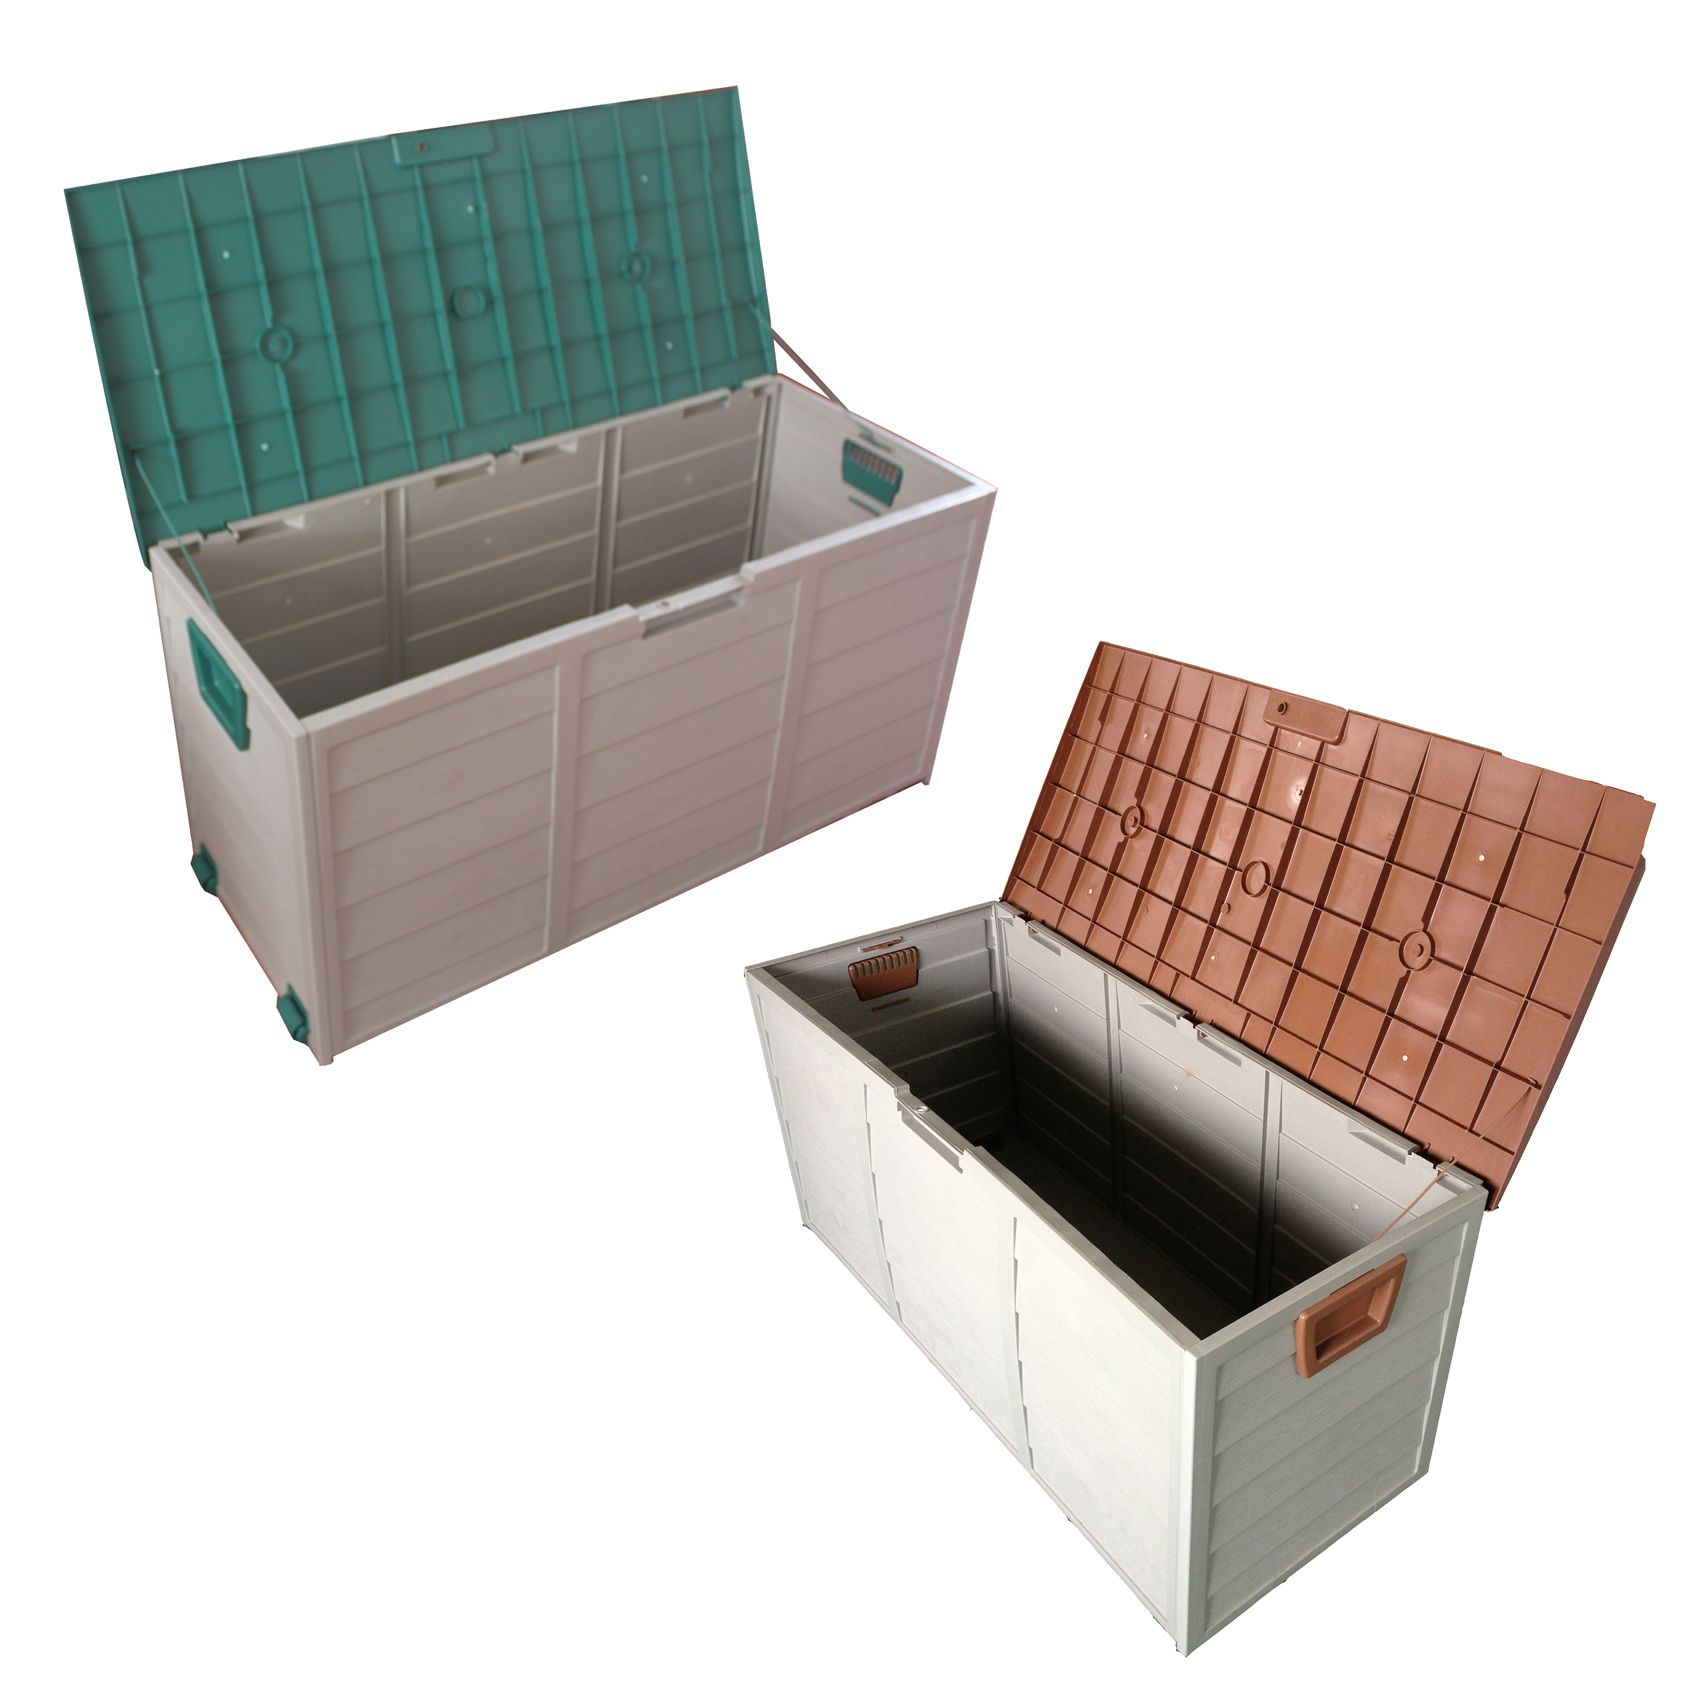 New Garden Outdoor Plastic Utility Storage Chest Shed Box Case Container  Wheels BUY A LOCK, Fill With Mud Or Sand And Digging Equipment